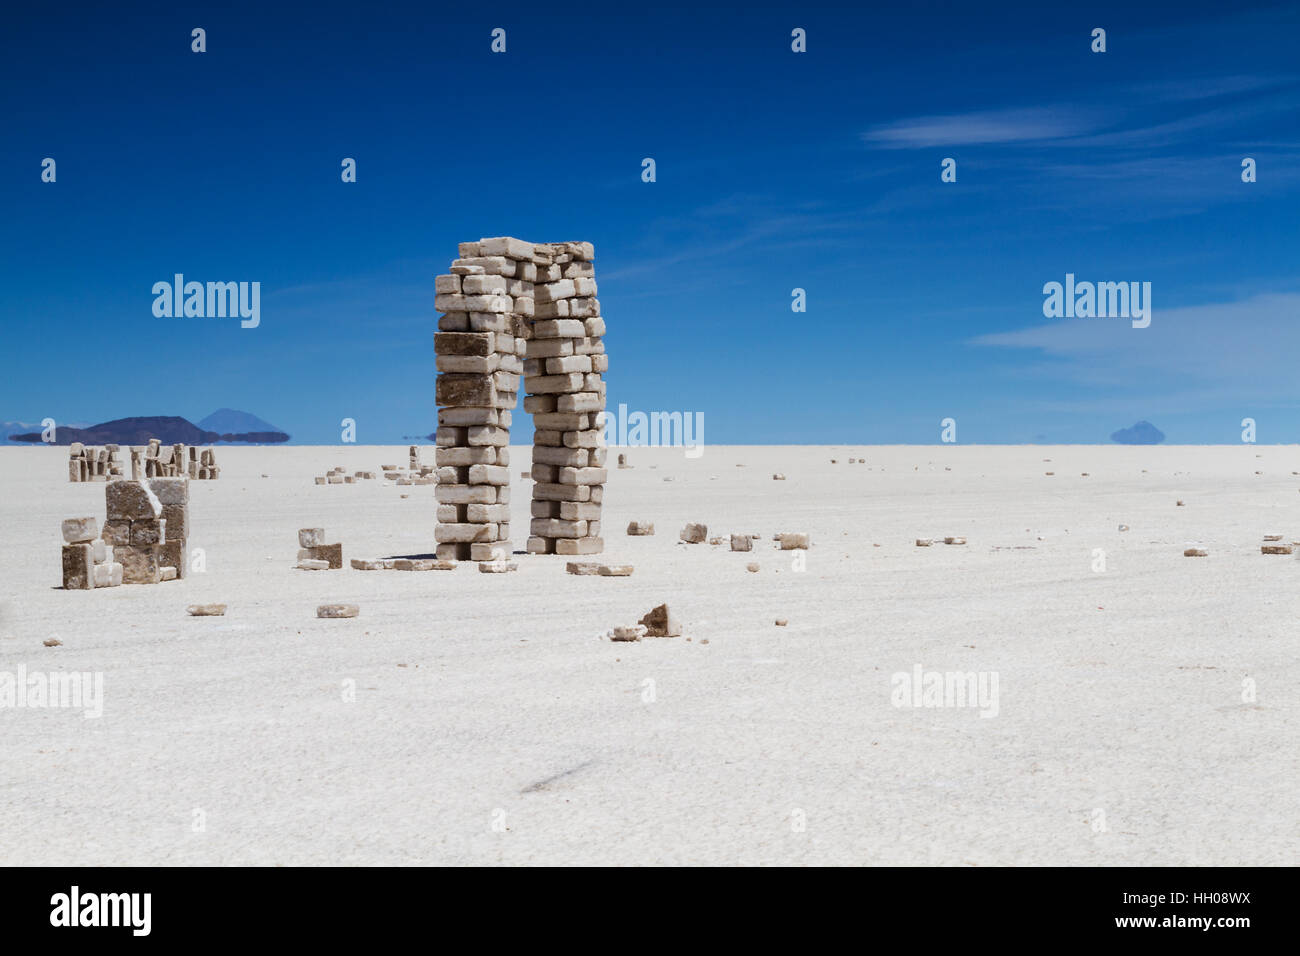 Salt bricks at Salar de Uyuni, Altiplano, Bolivia - Stock Image